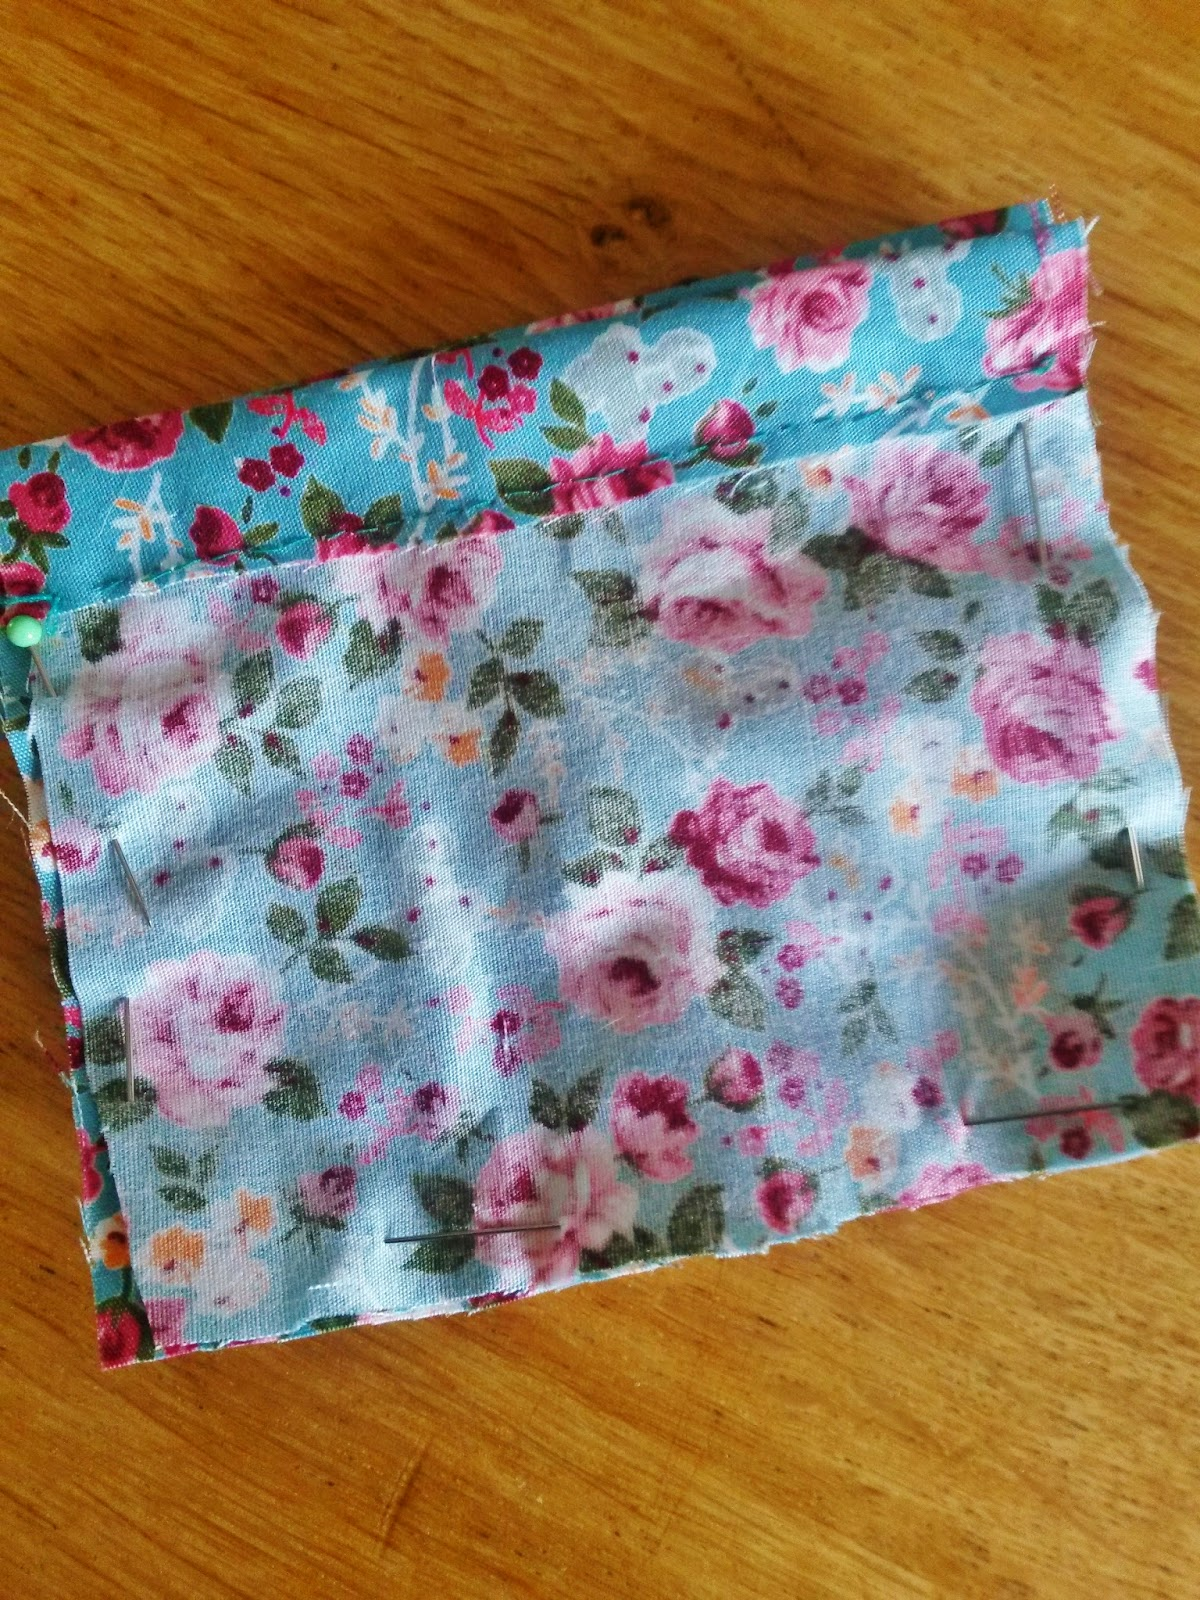 Sewing lavender bag